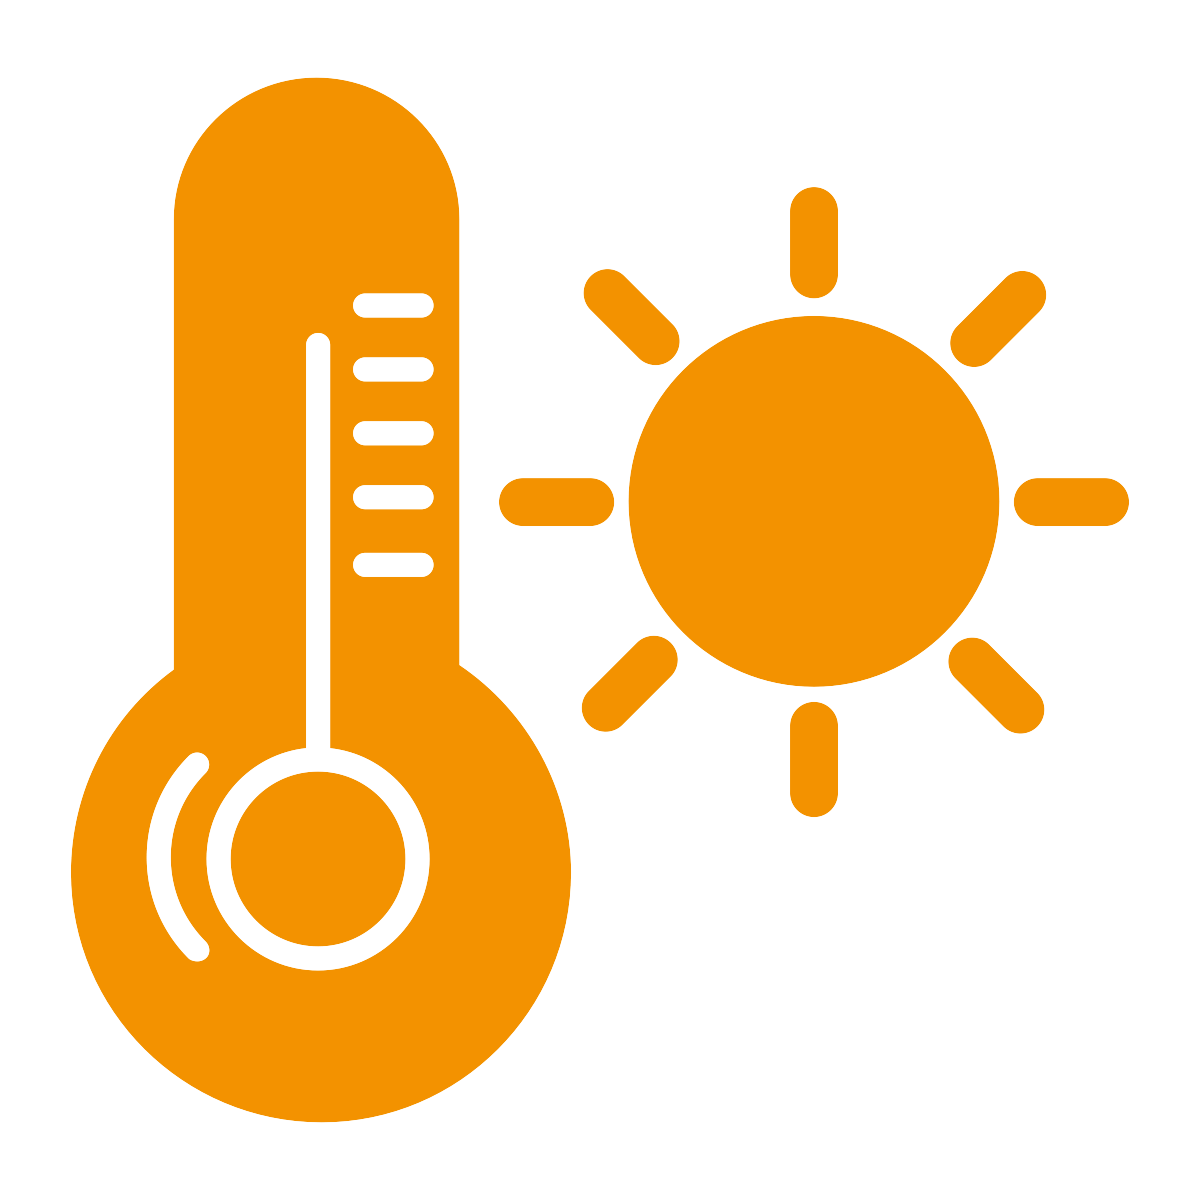 noun_Hot Thermometer_1289248_f39200